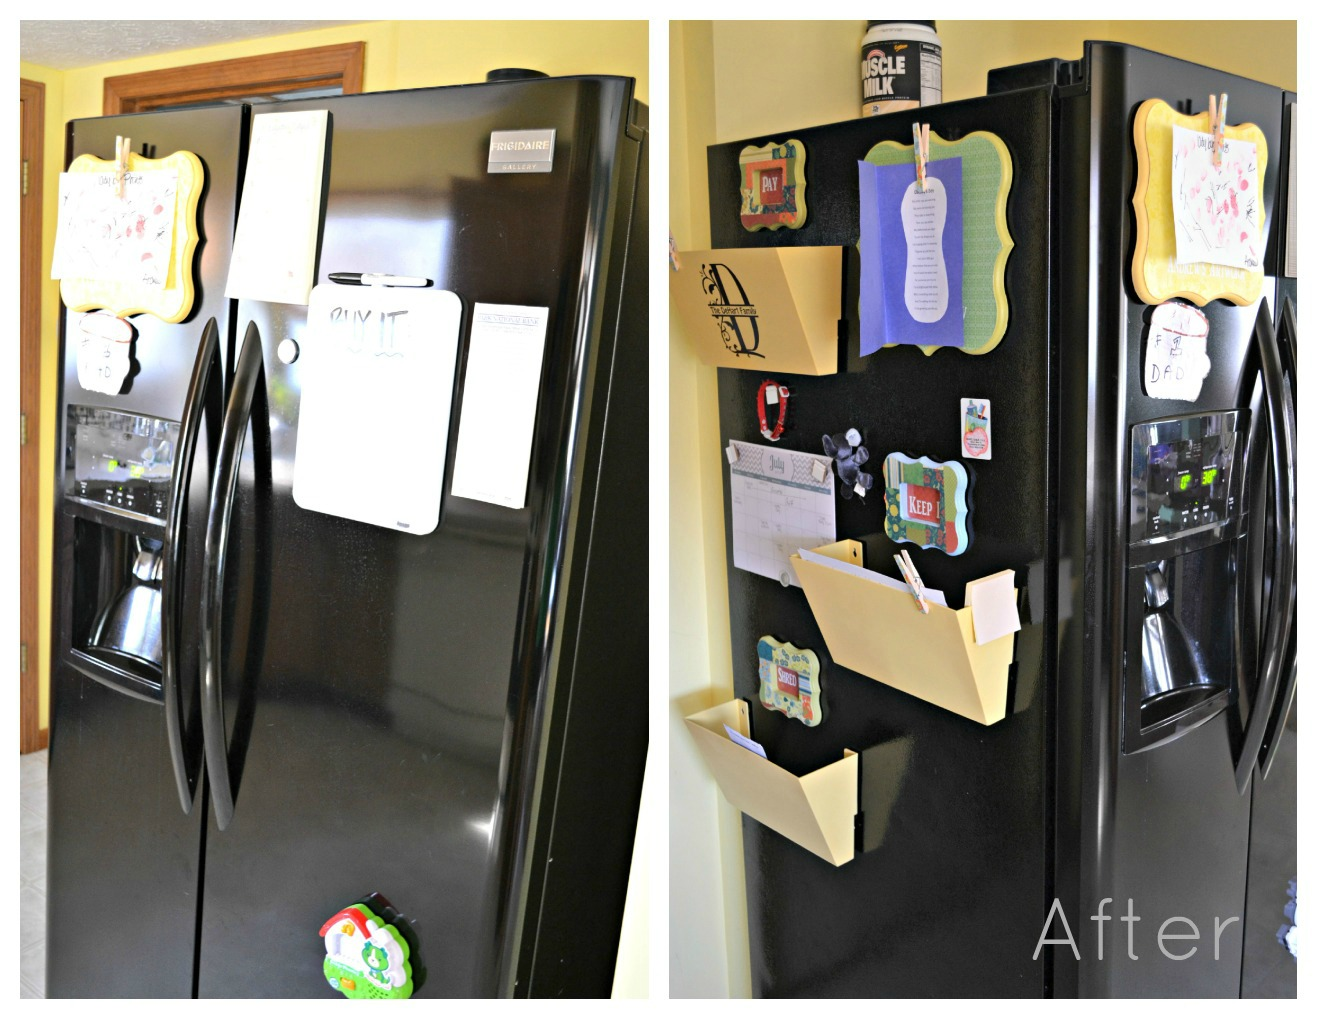 Pimp ton frigo homeserve conseils for Decoration porte frigo